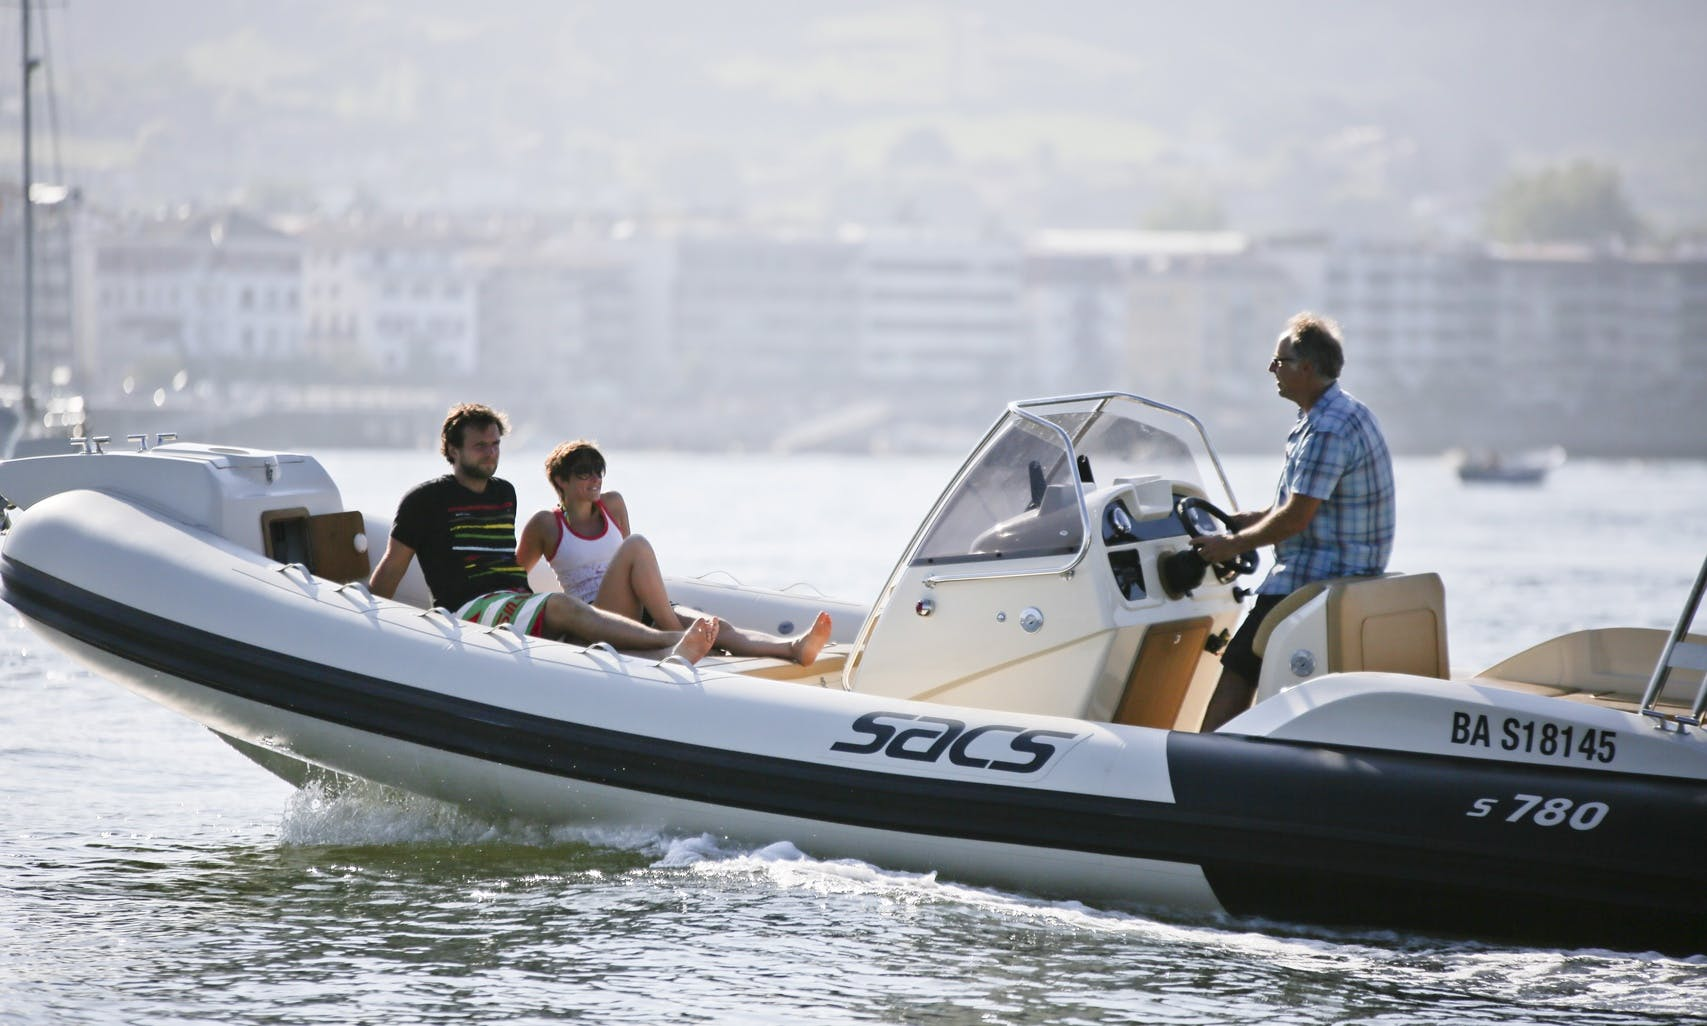 Enjoy the 780 Sacs Powerboat in Hendaye, Basque Country